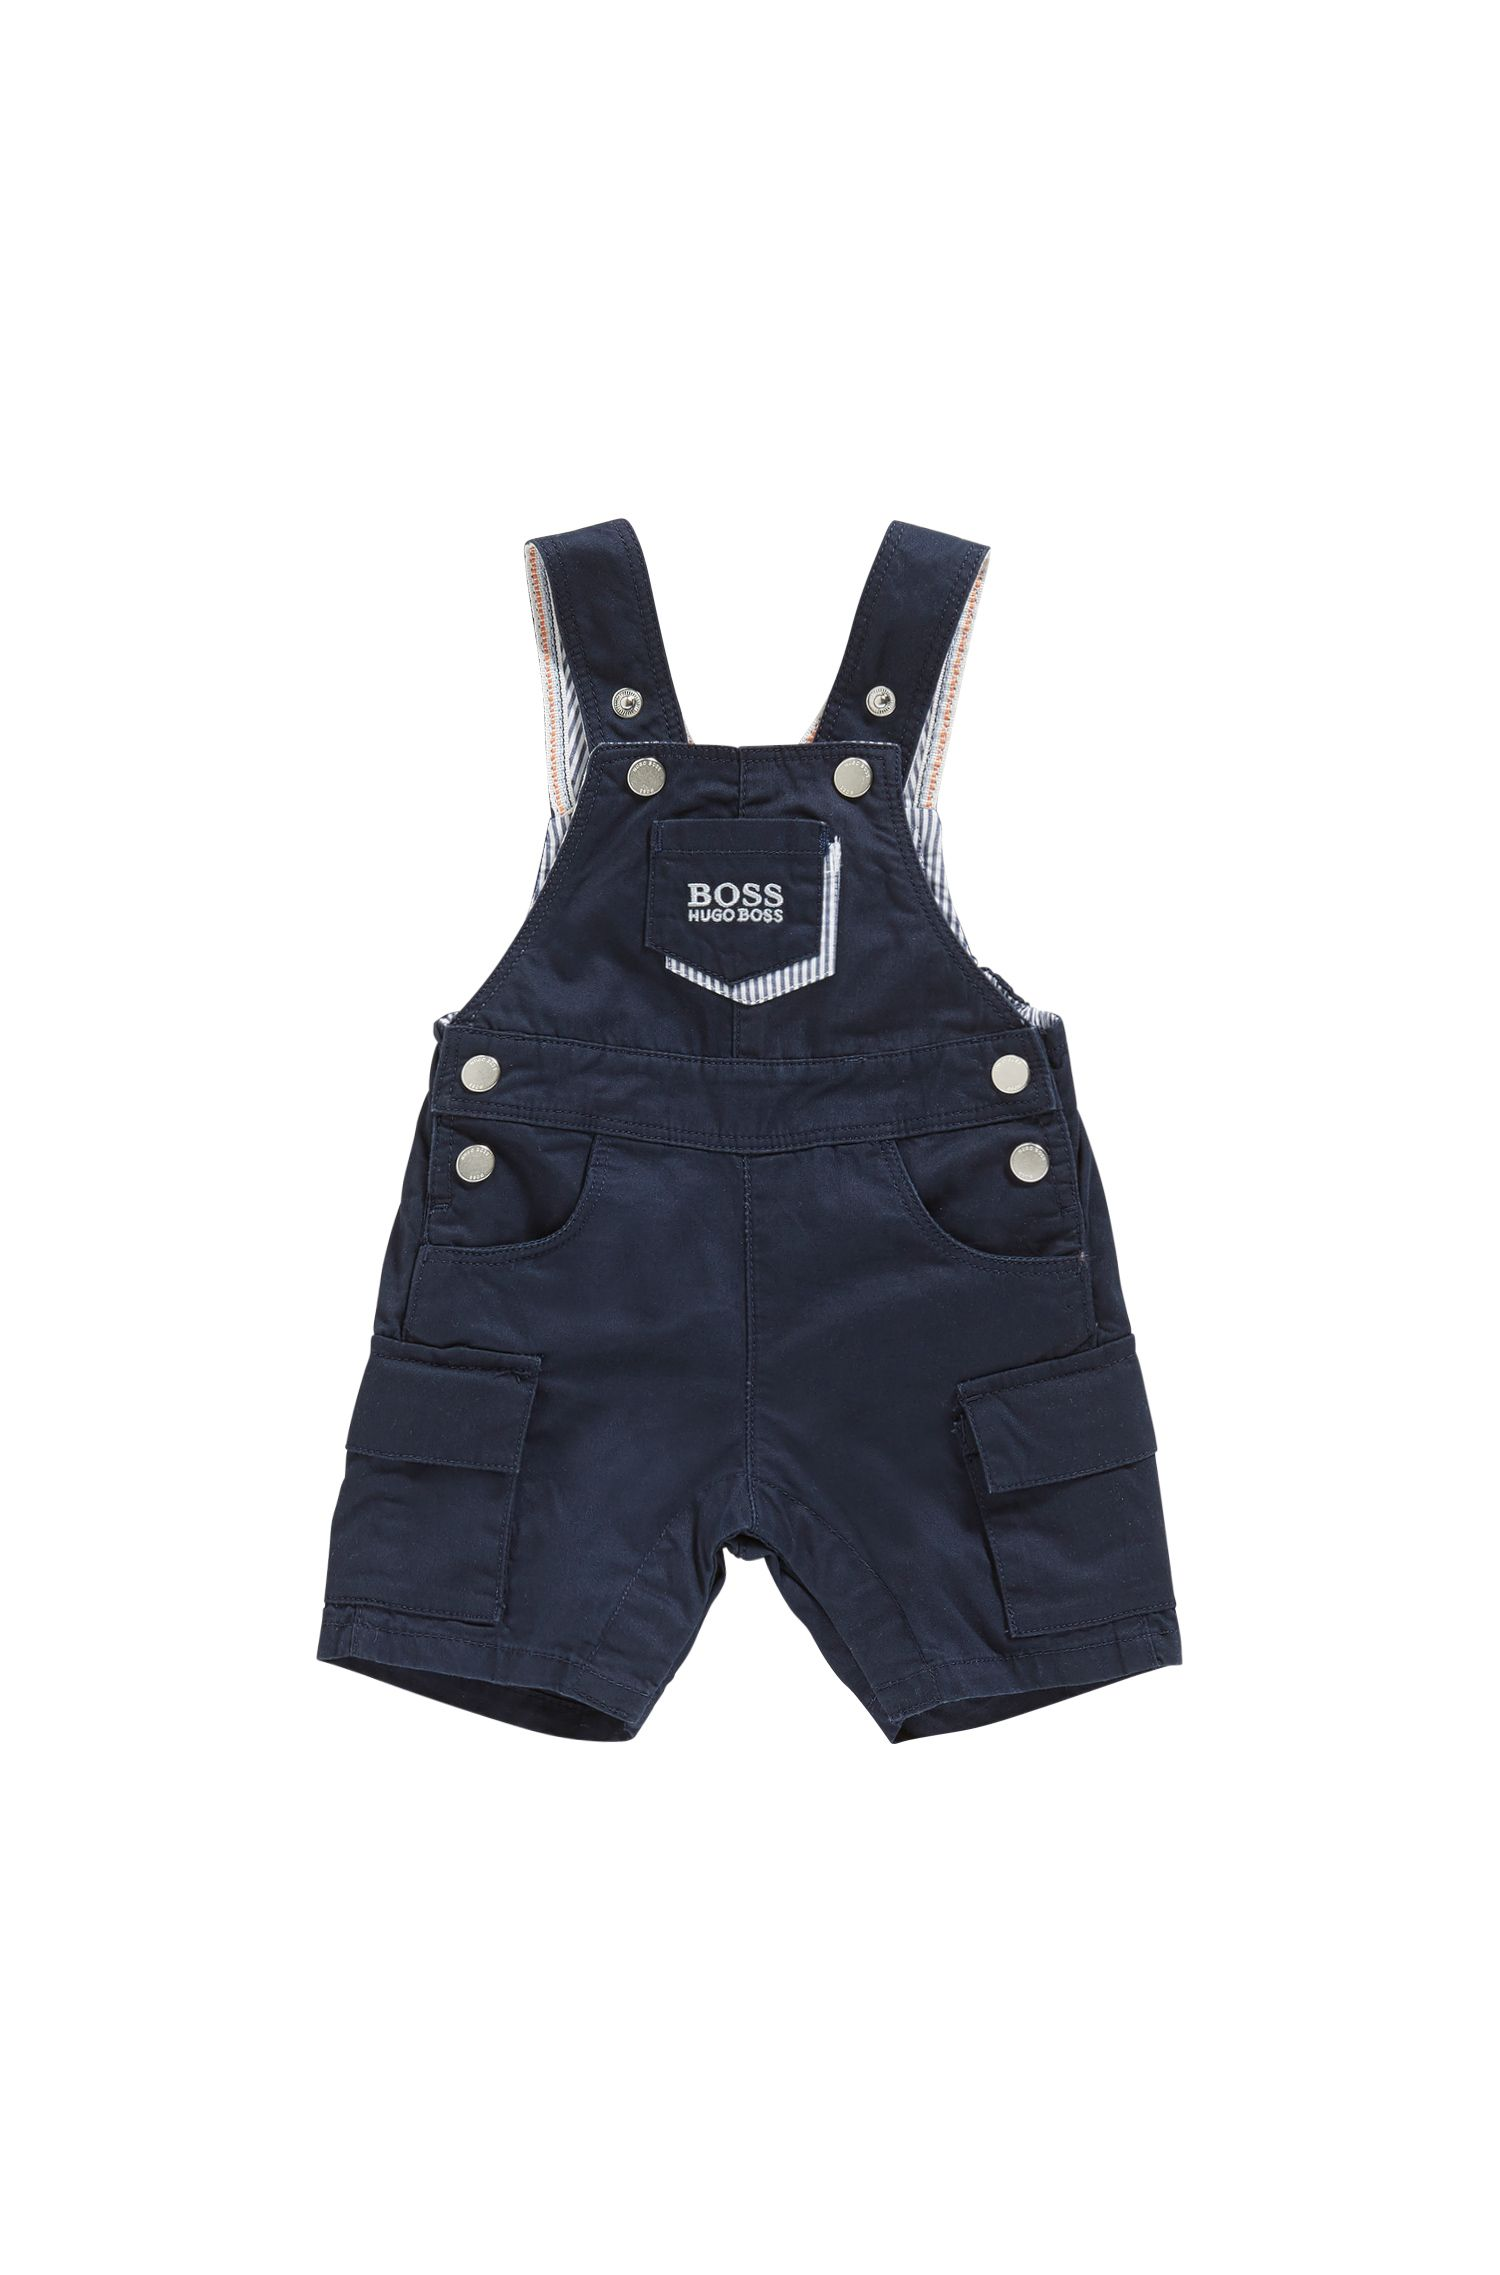 Newborns' dungaree shorts in cotton with adjustable braces: 'J94177'